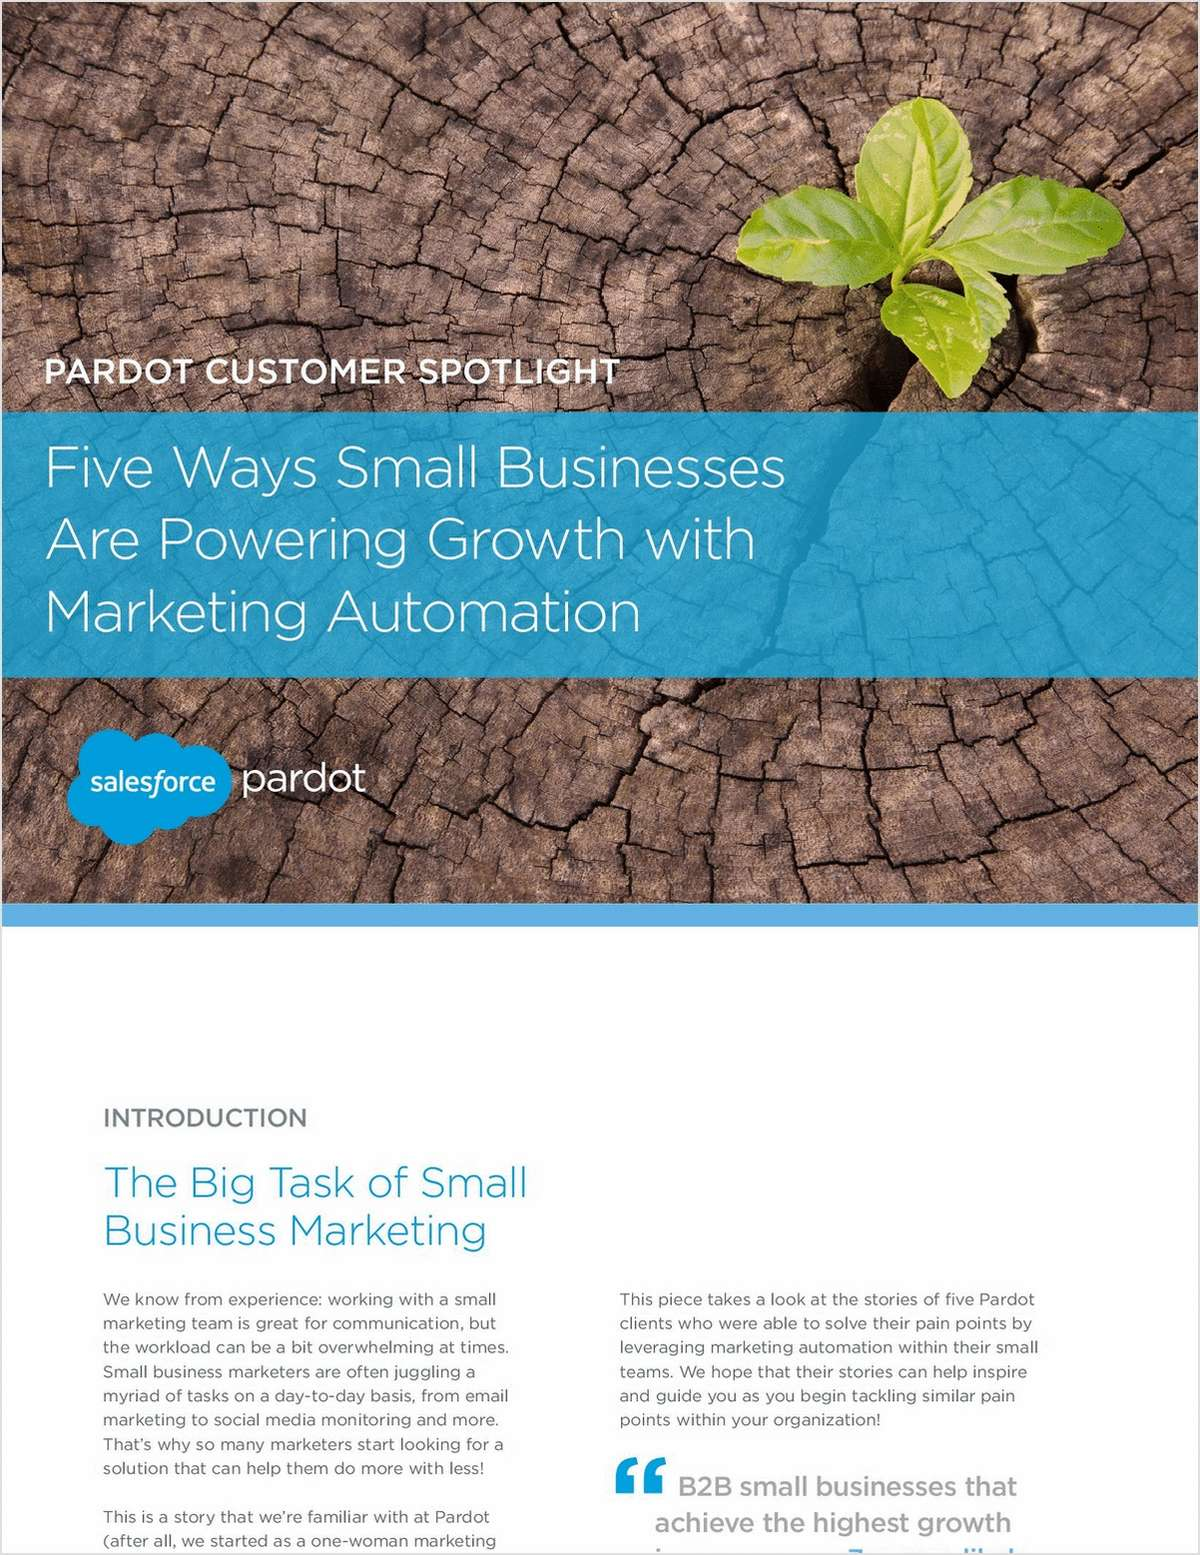 Five Ways Small Businesses are Powering Growth with Marketing Automation